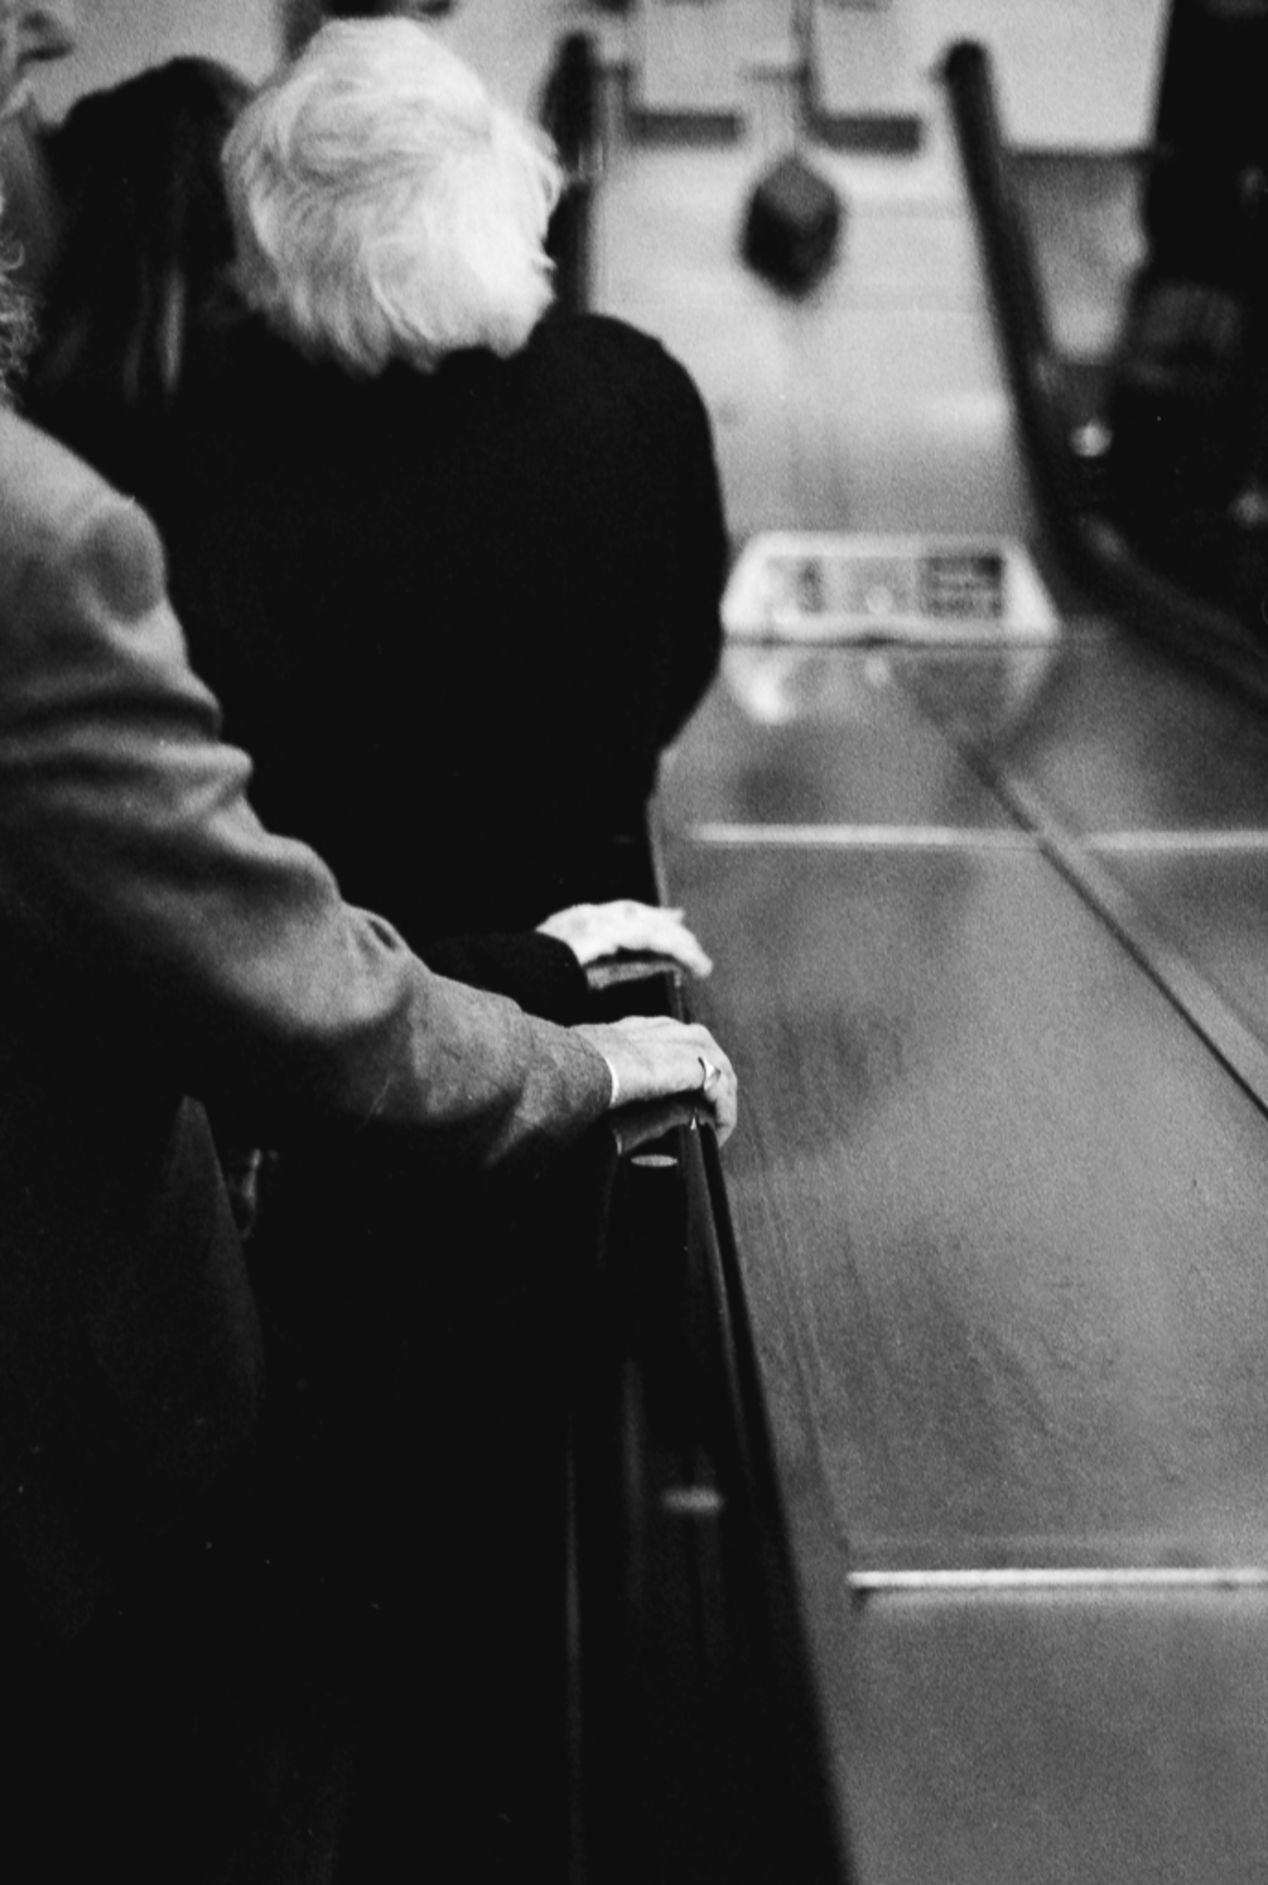 London Underground | 2018 | Ilford HP5+